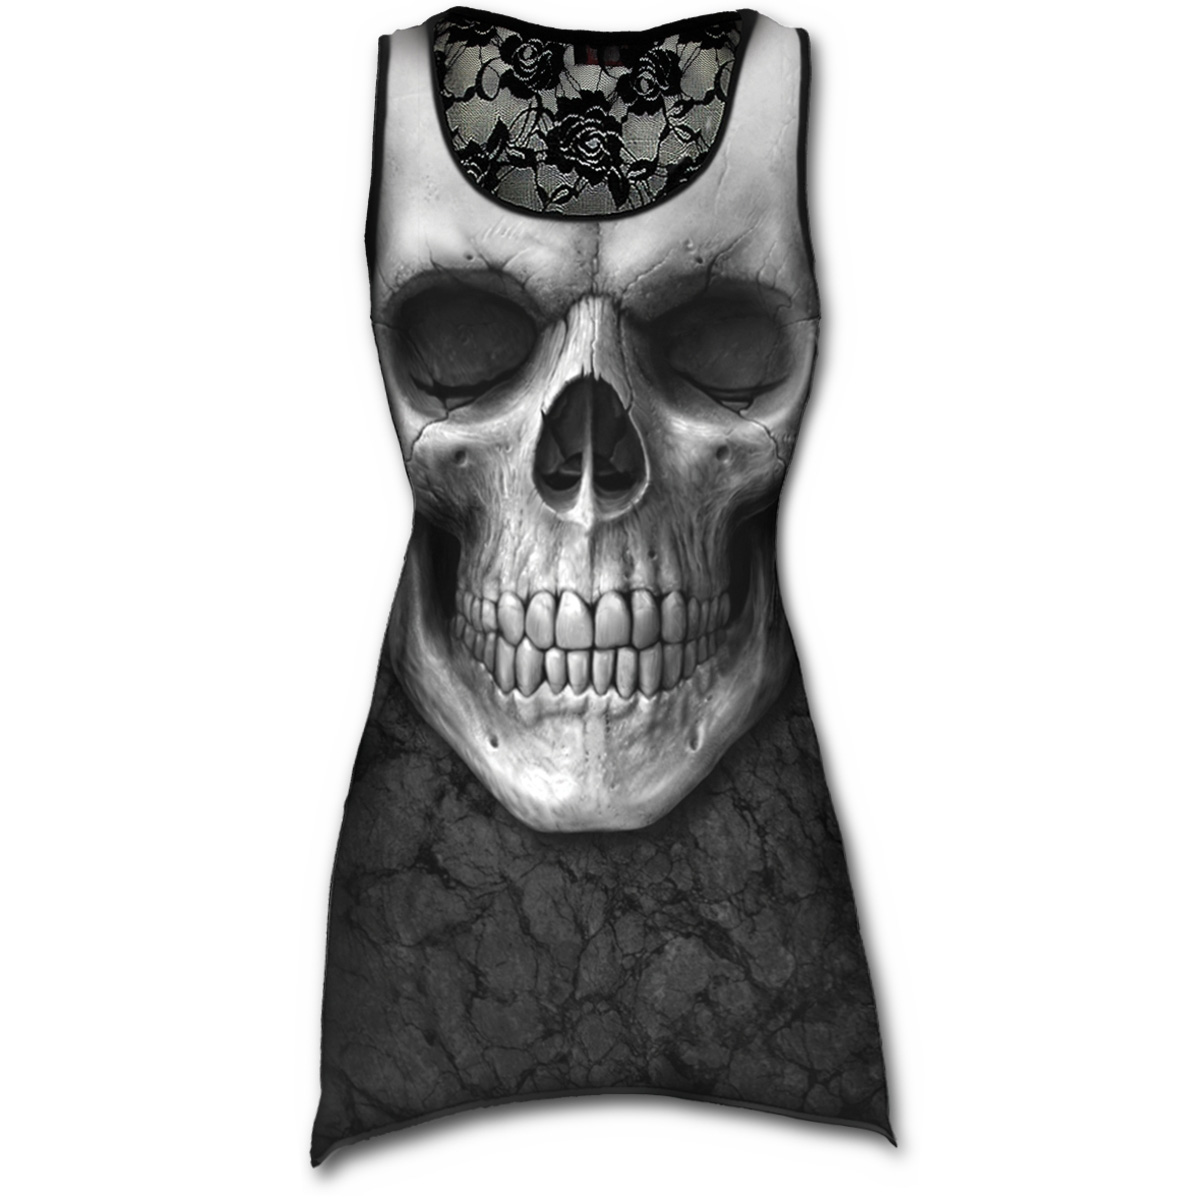 SPIRAL-DIRECT-Ladies-Black-Goth-SOLEMN-SKULL-Lace-Vest-Top-All-Sizes thumbnail 19